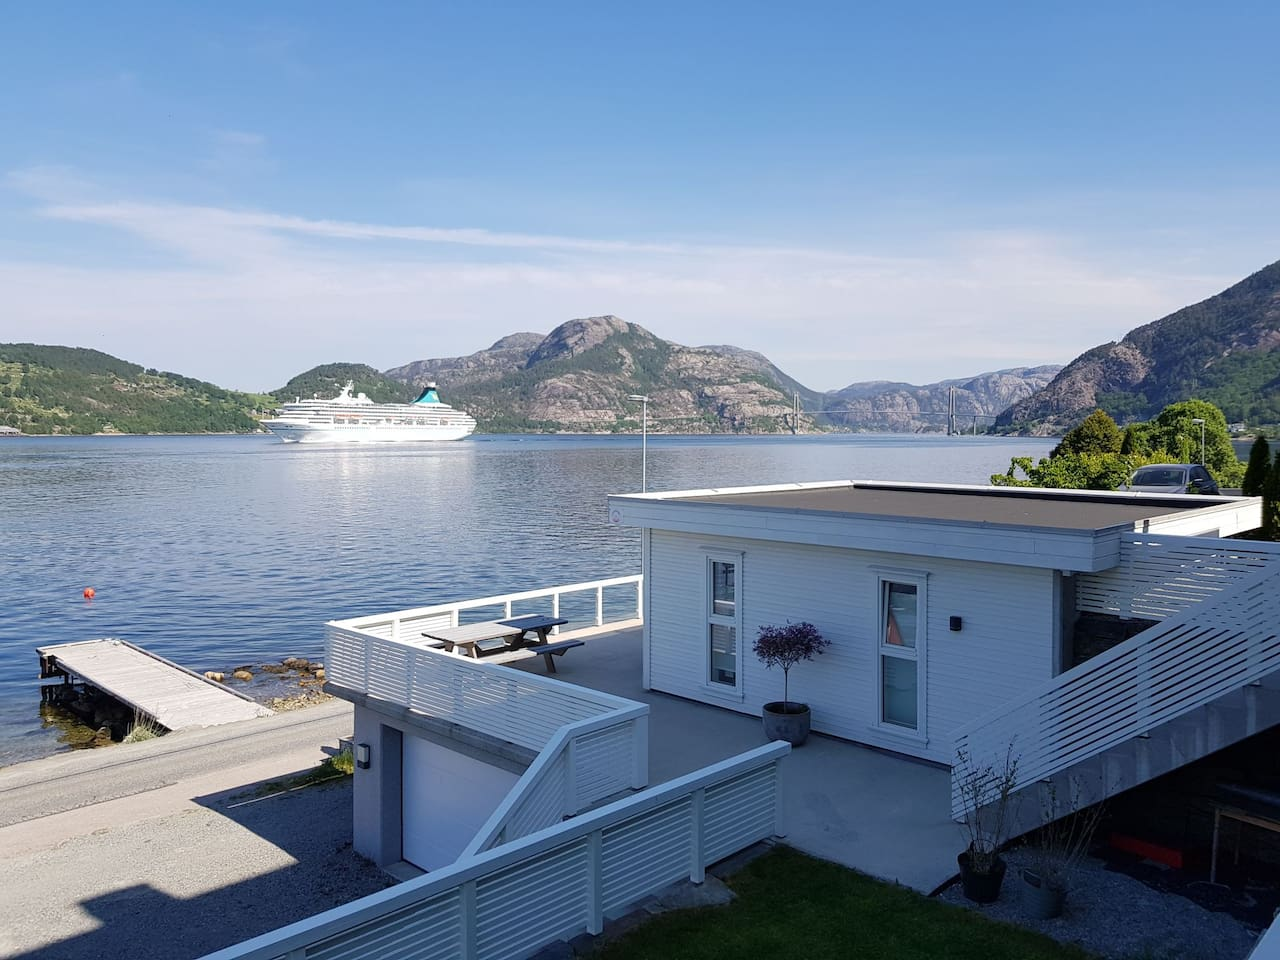 The Lysefjorden Guesthouse